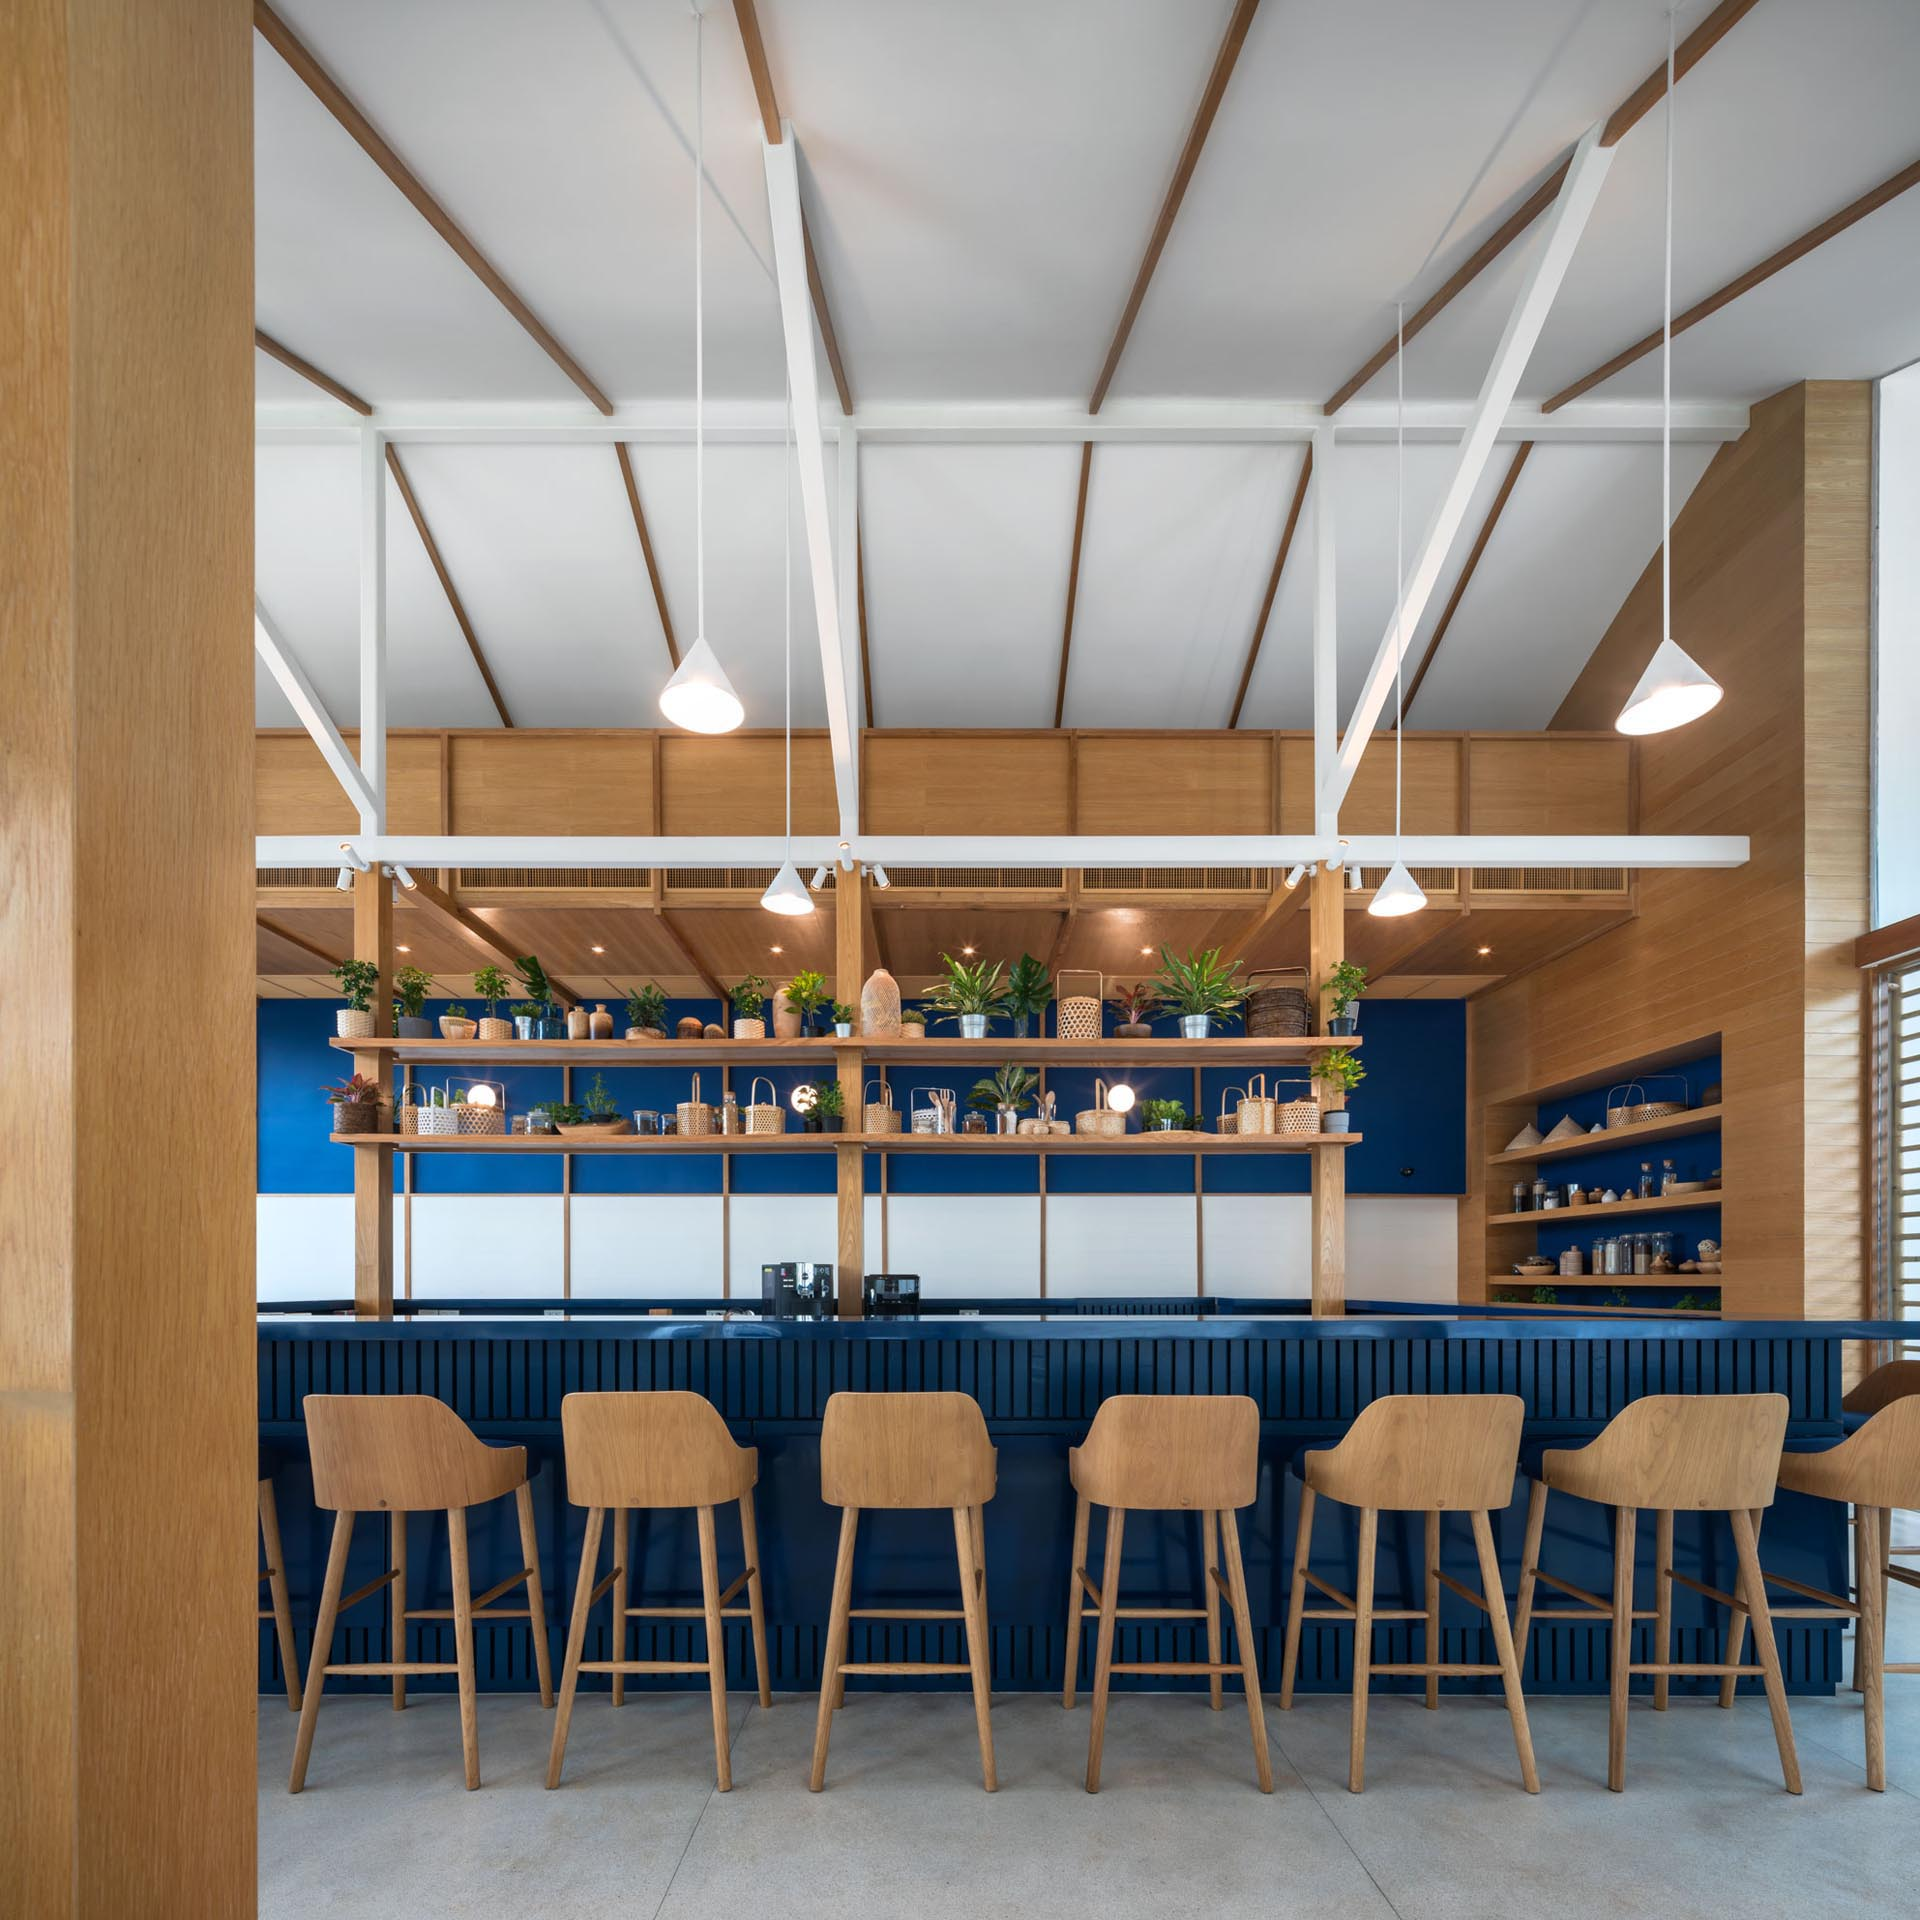 A modern hotel restaurant with blue, white, and wood color scheme.